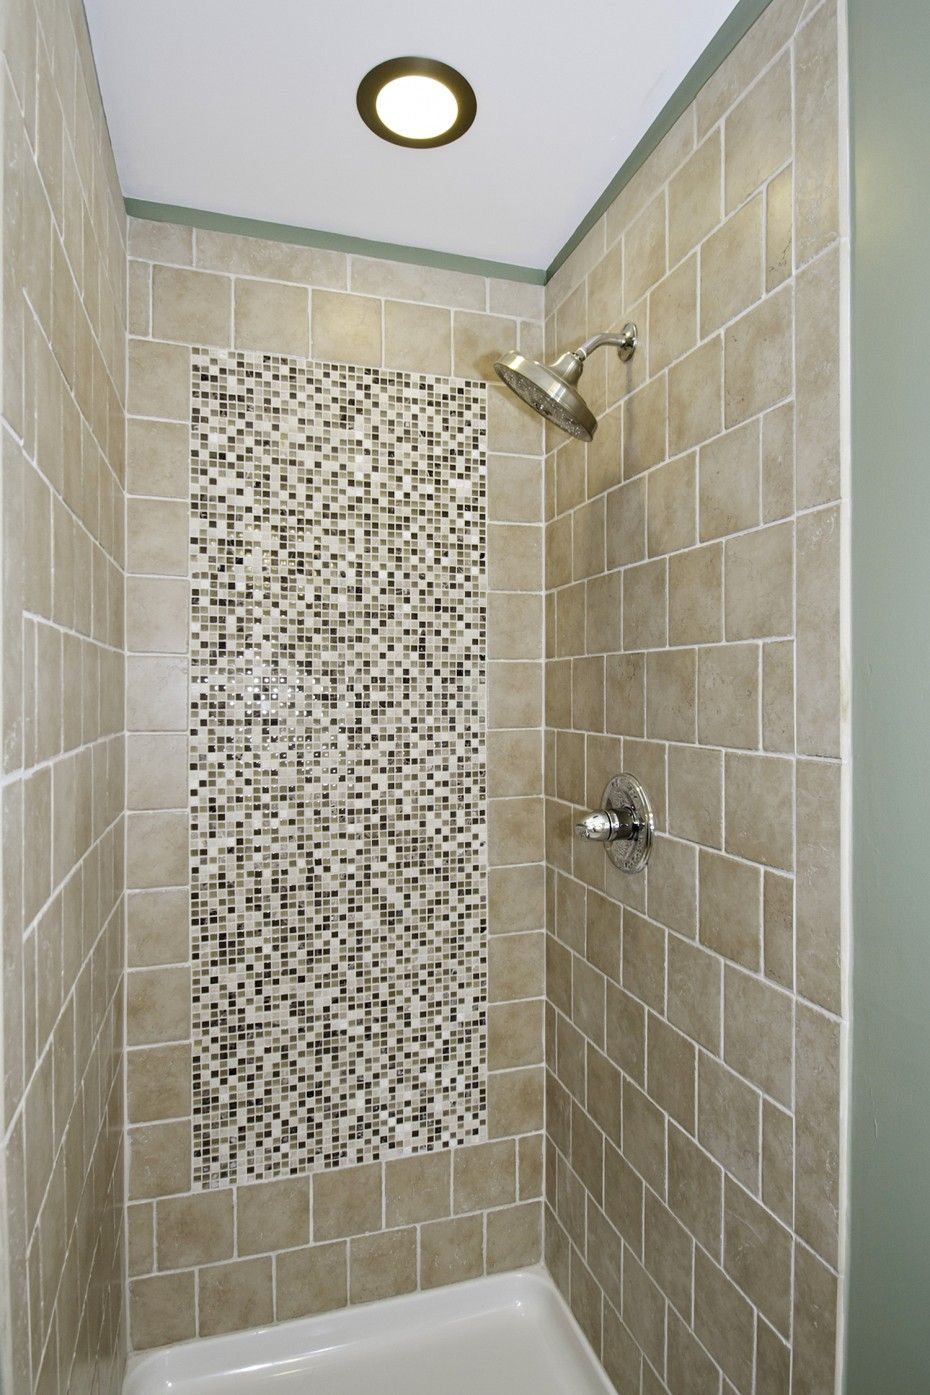 Bathroom Inspiration Superb Stand Up Shower With Enclosure And Acrylic Designs In Vogue Small Stand Bathroom Tile Designs Tile Bathroom Bathroom Design Small